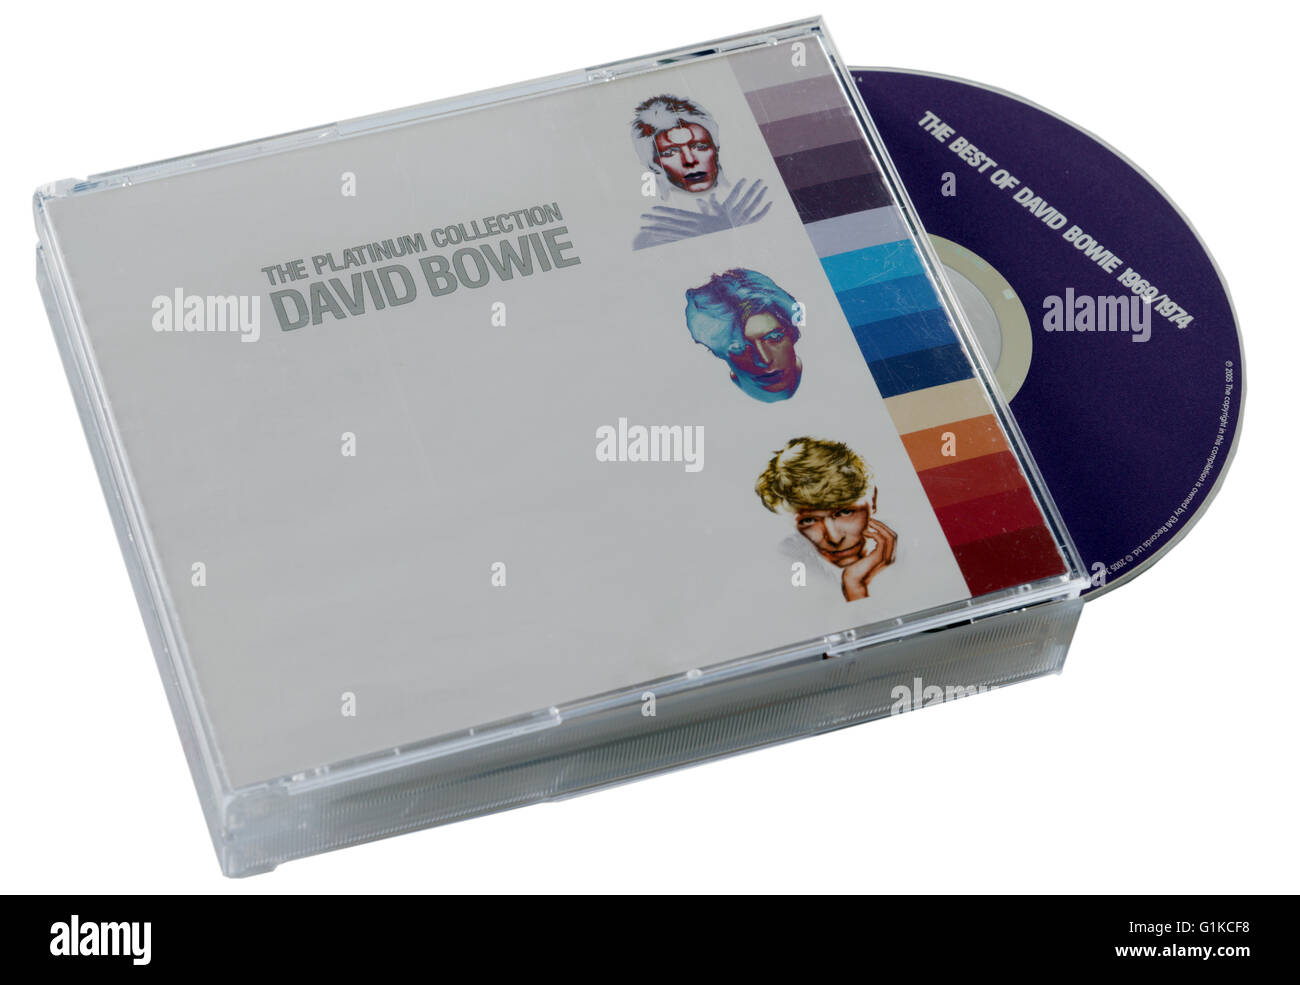 David Bowie The Platinum Collection CD - Stock Image